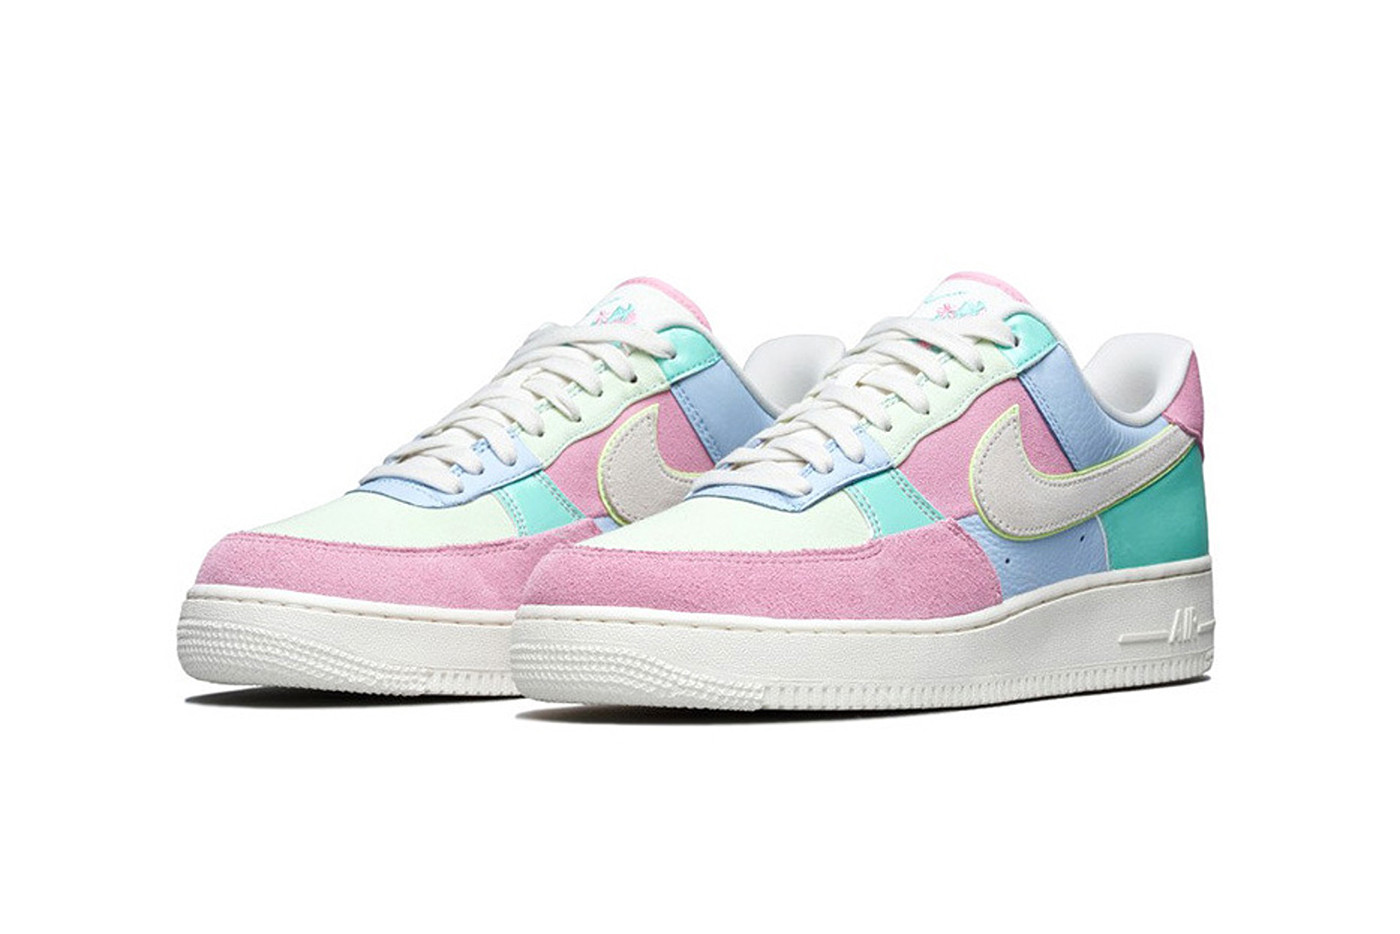 Nike Easter-Themed Air Force 1 Low